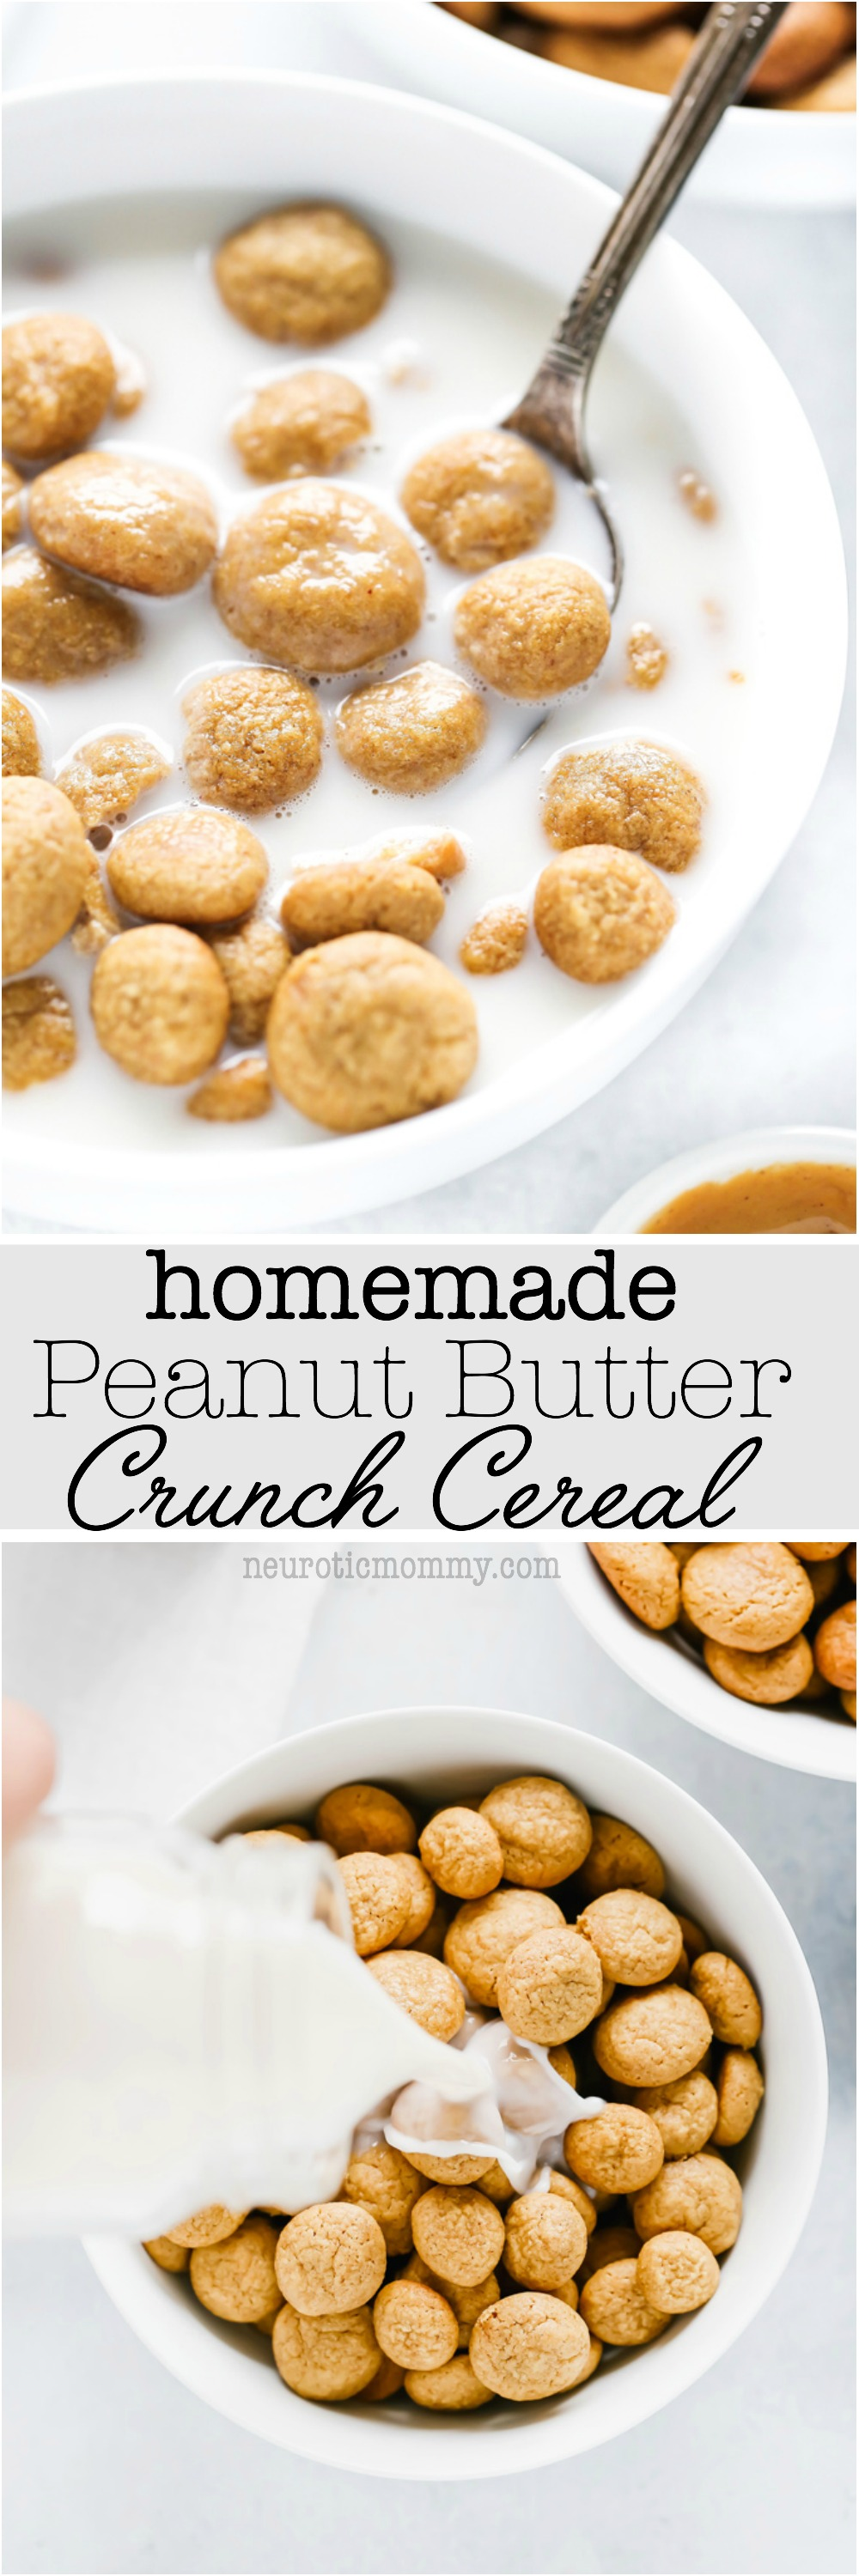 Homemade Peanut Butter Crunch Cereal - People look forward to breakfast and it can be the most important meal of the day for some, make it special by adding these homemade peanut butter gems to the mix. NeuroticMommy.com #vegan #cereal #homemade